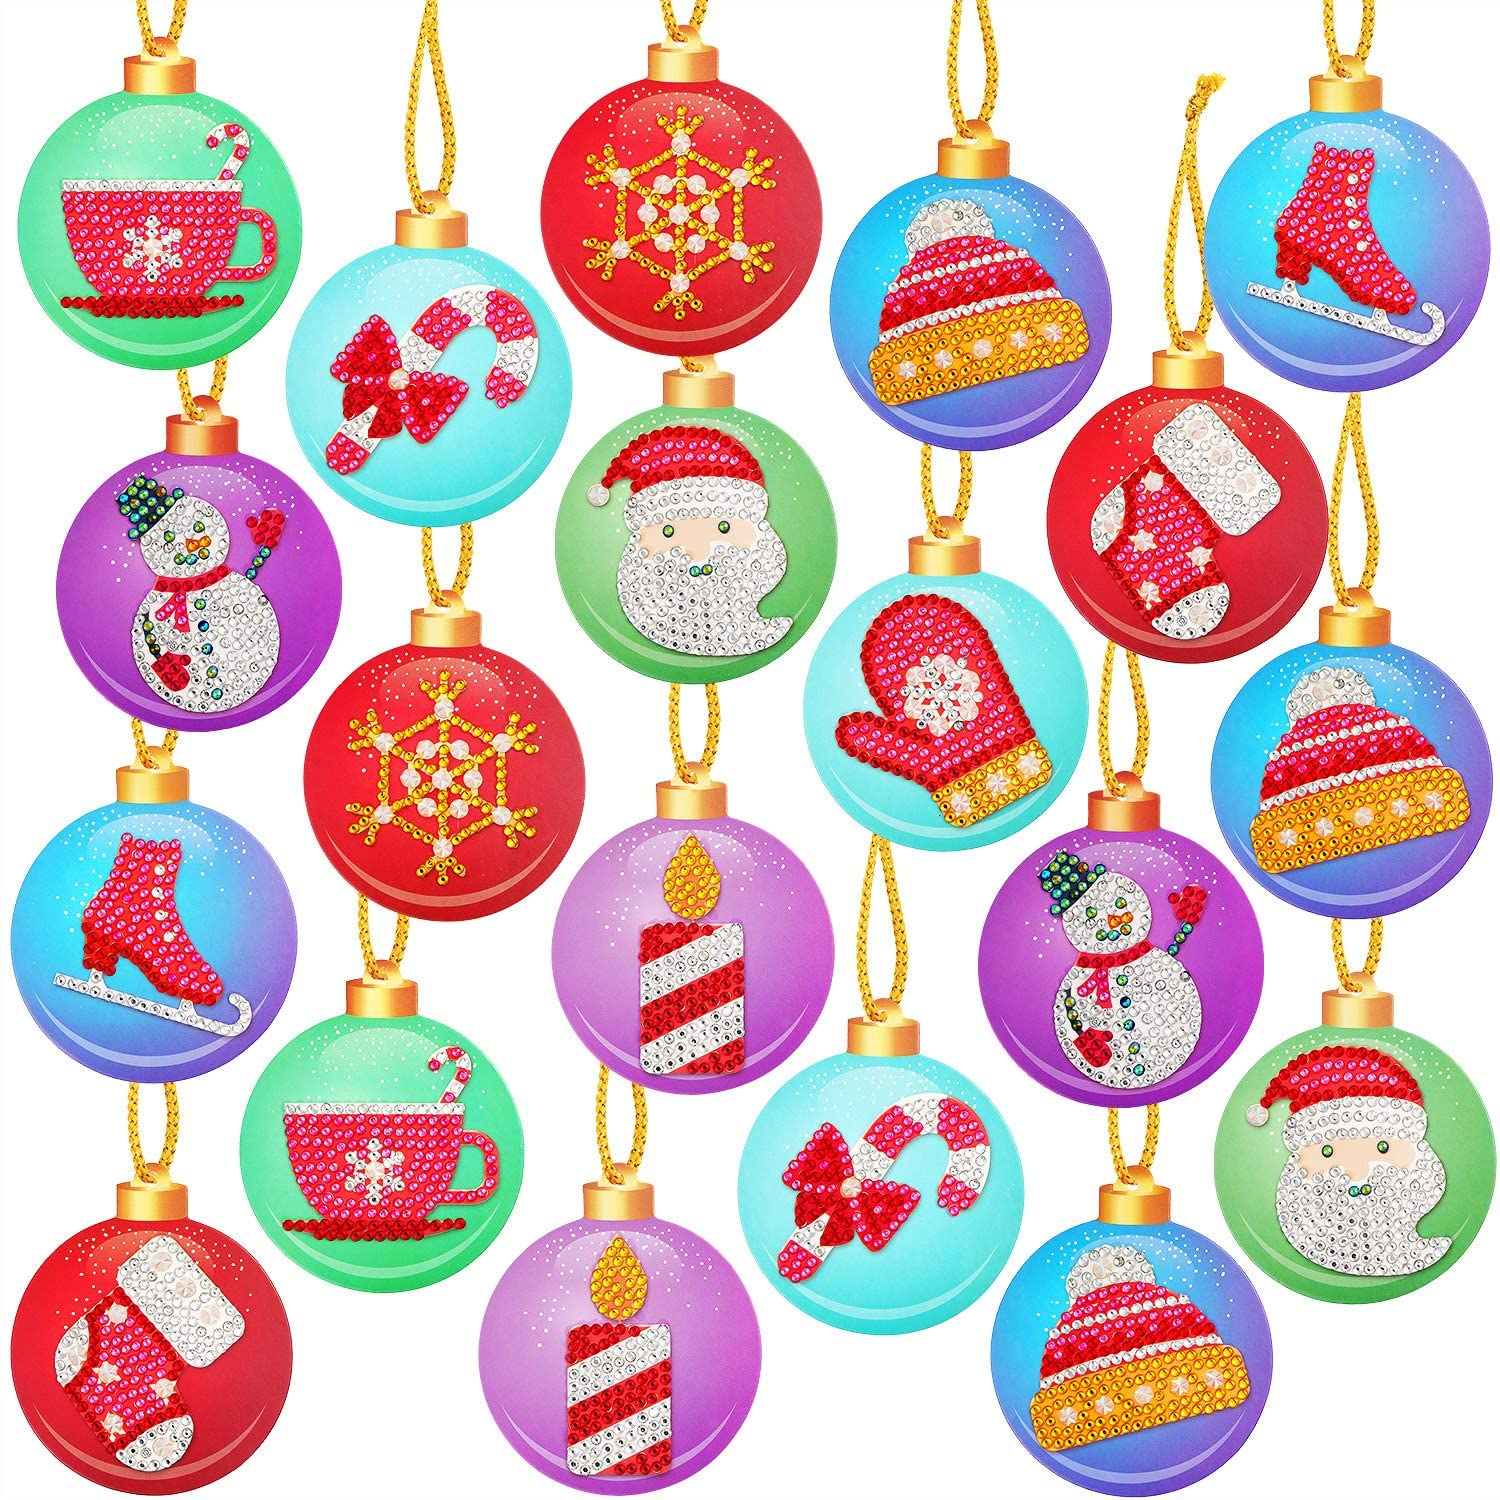 20 Pieces Christmas DIY Diamond Painting Tags Diamond Painting Key Chain Hanging Pendant Handcraft Cards Decoration for Christmas Tree Crafts Family Decoration